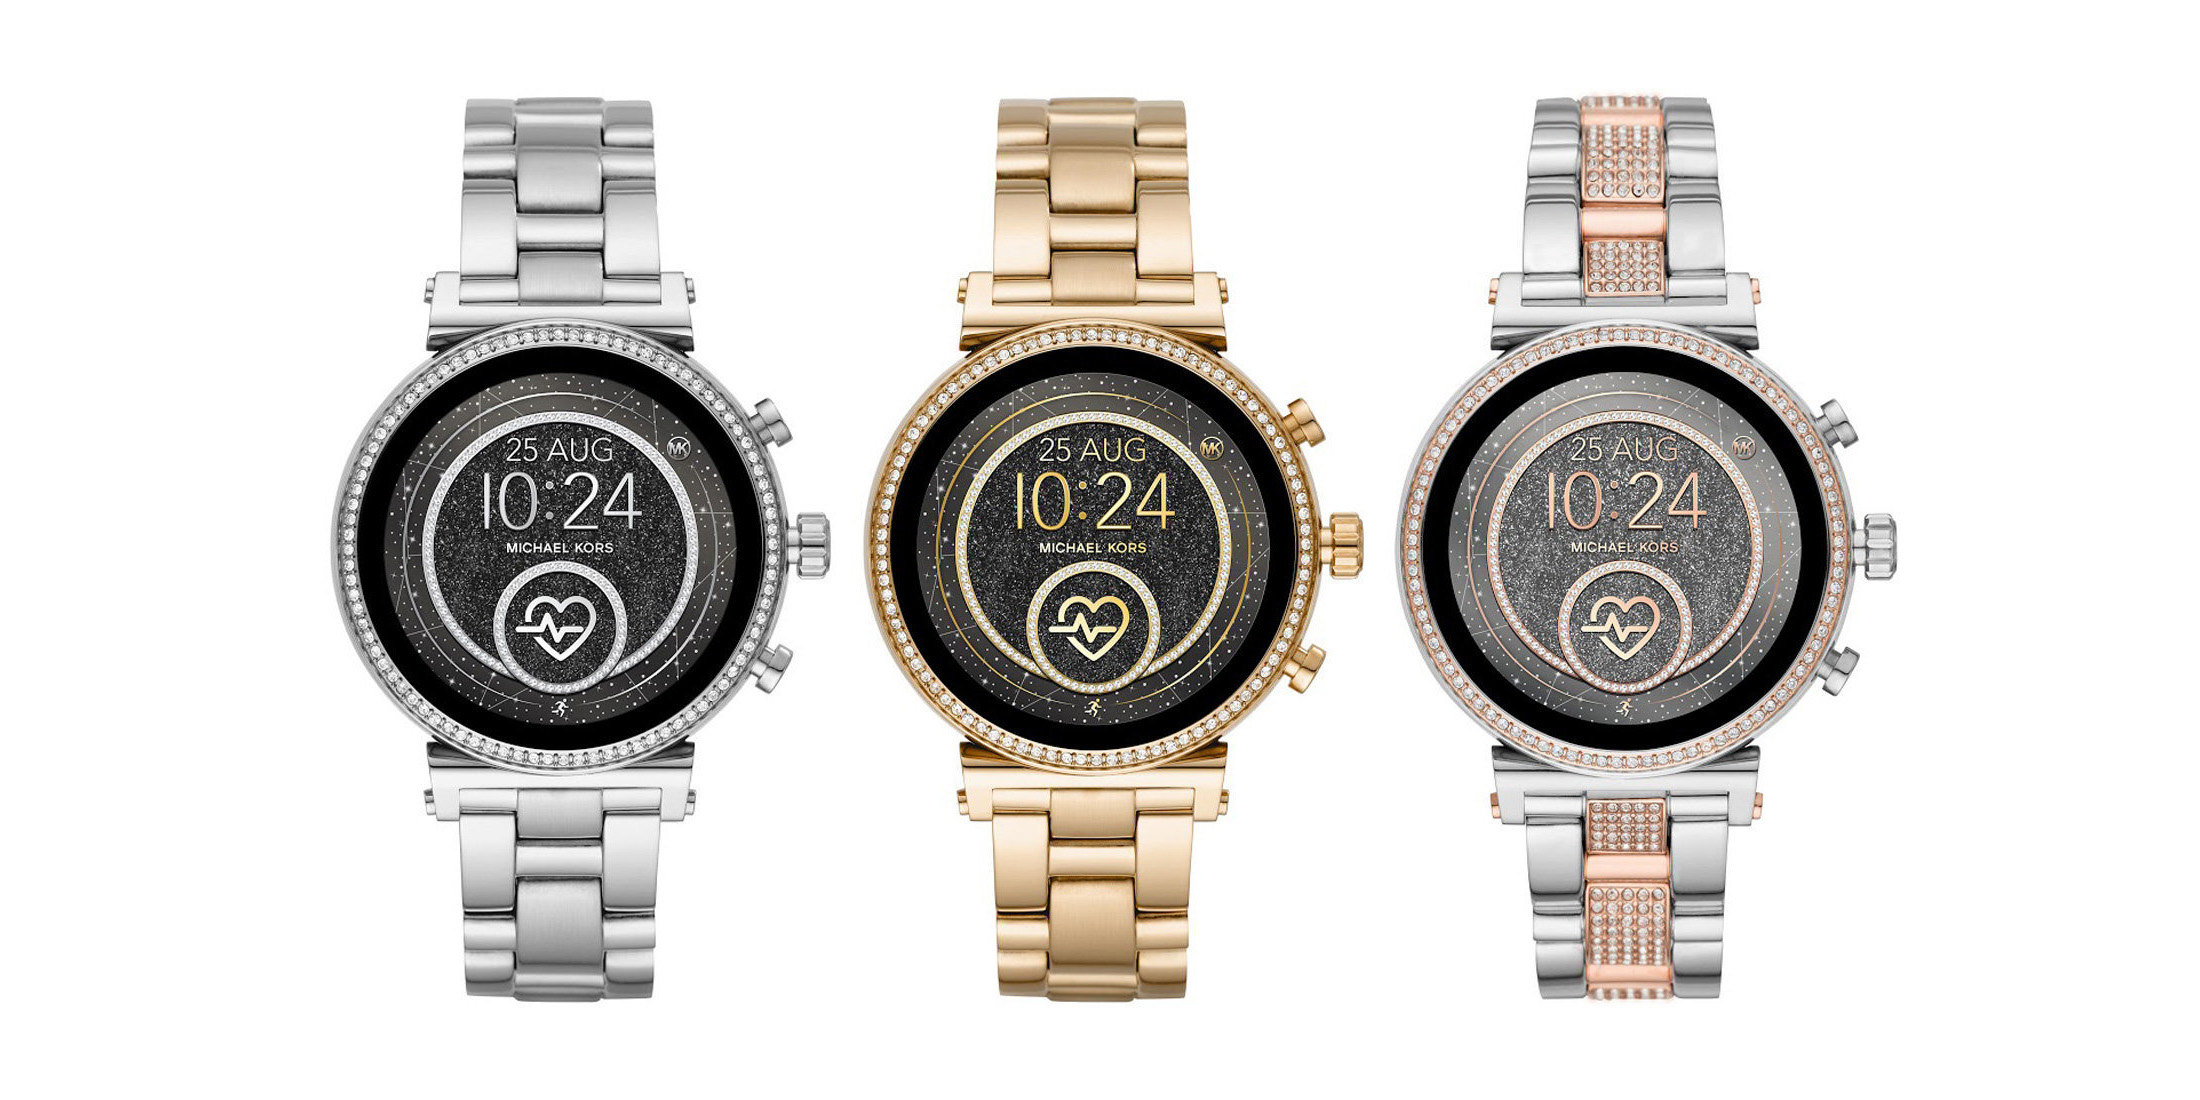 Michael Kors Sofie 2.0 adds NFC, GPS, more for Wear OS